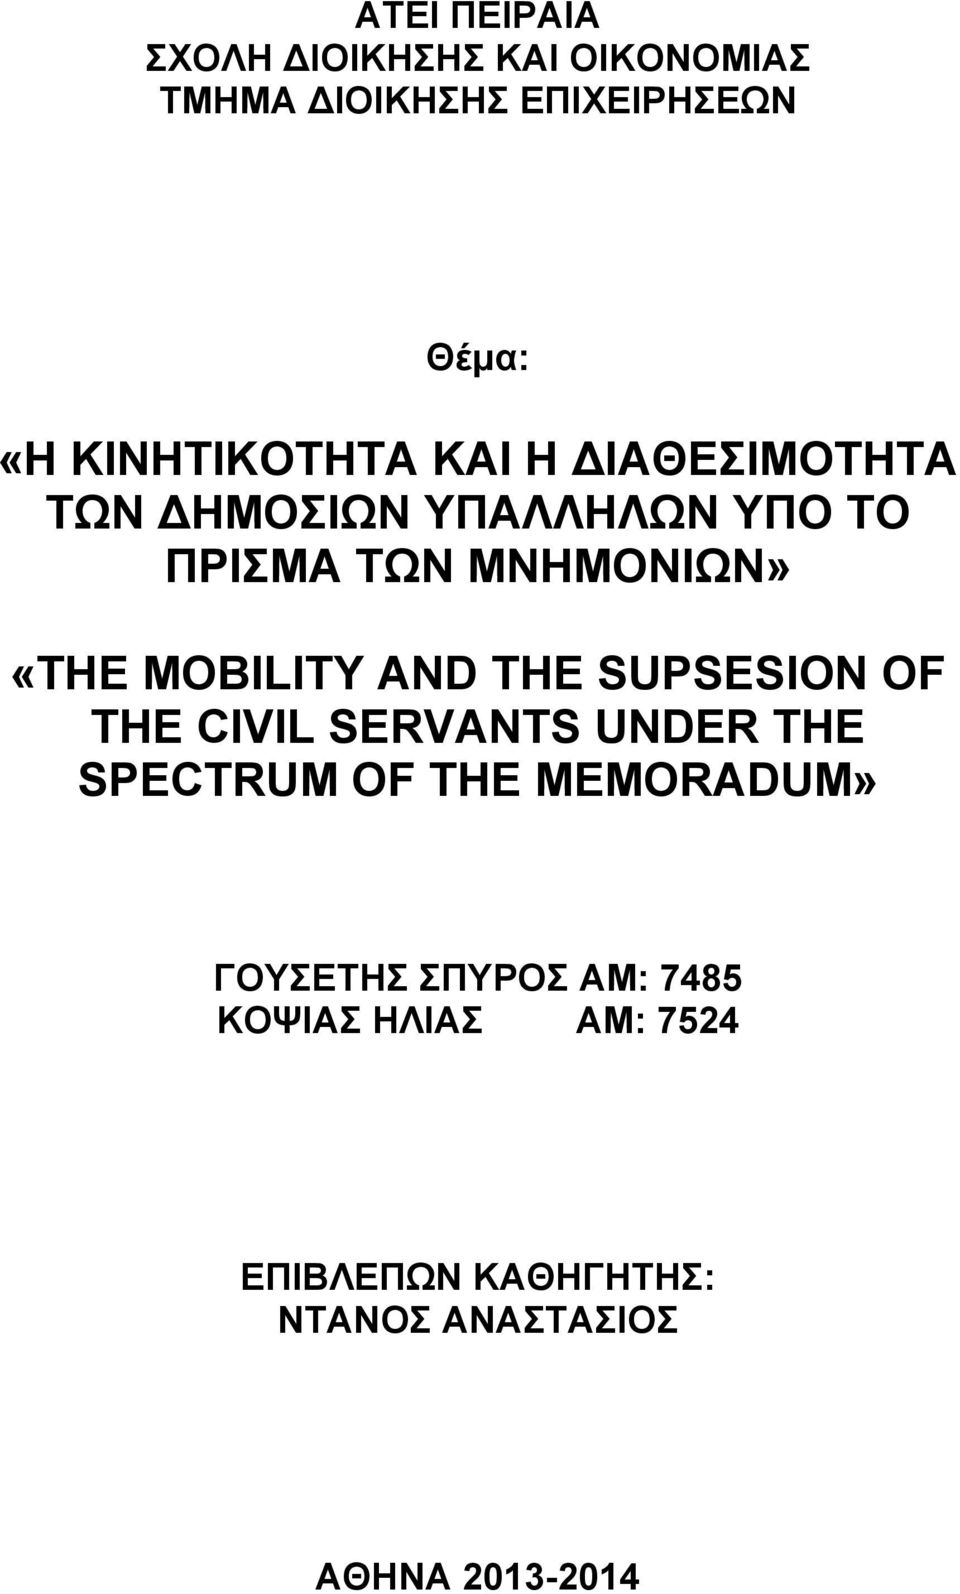 MOBILITY AND THE SUPSESION OF THE CIVIL SERVANTS UNDER THE SPECTRUM OF THE MEMORADUM»